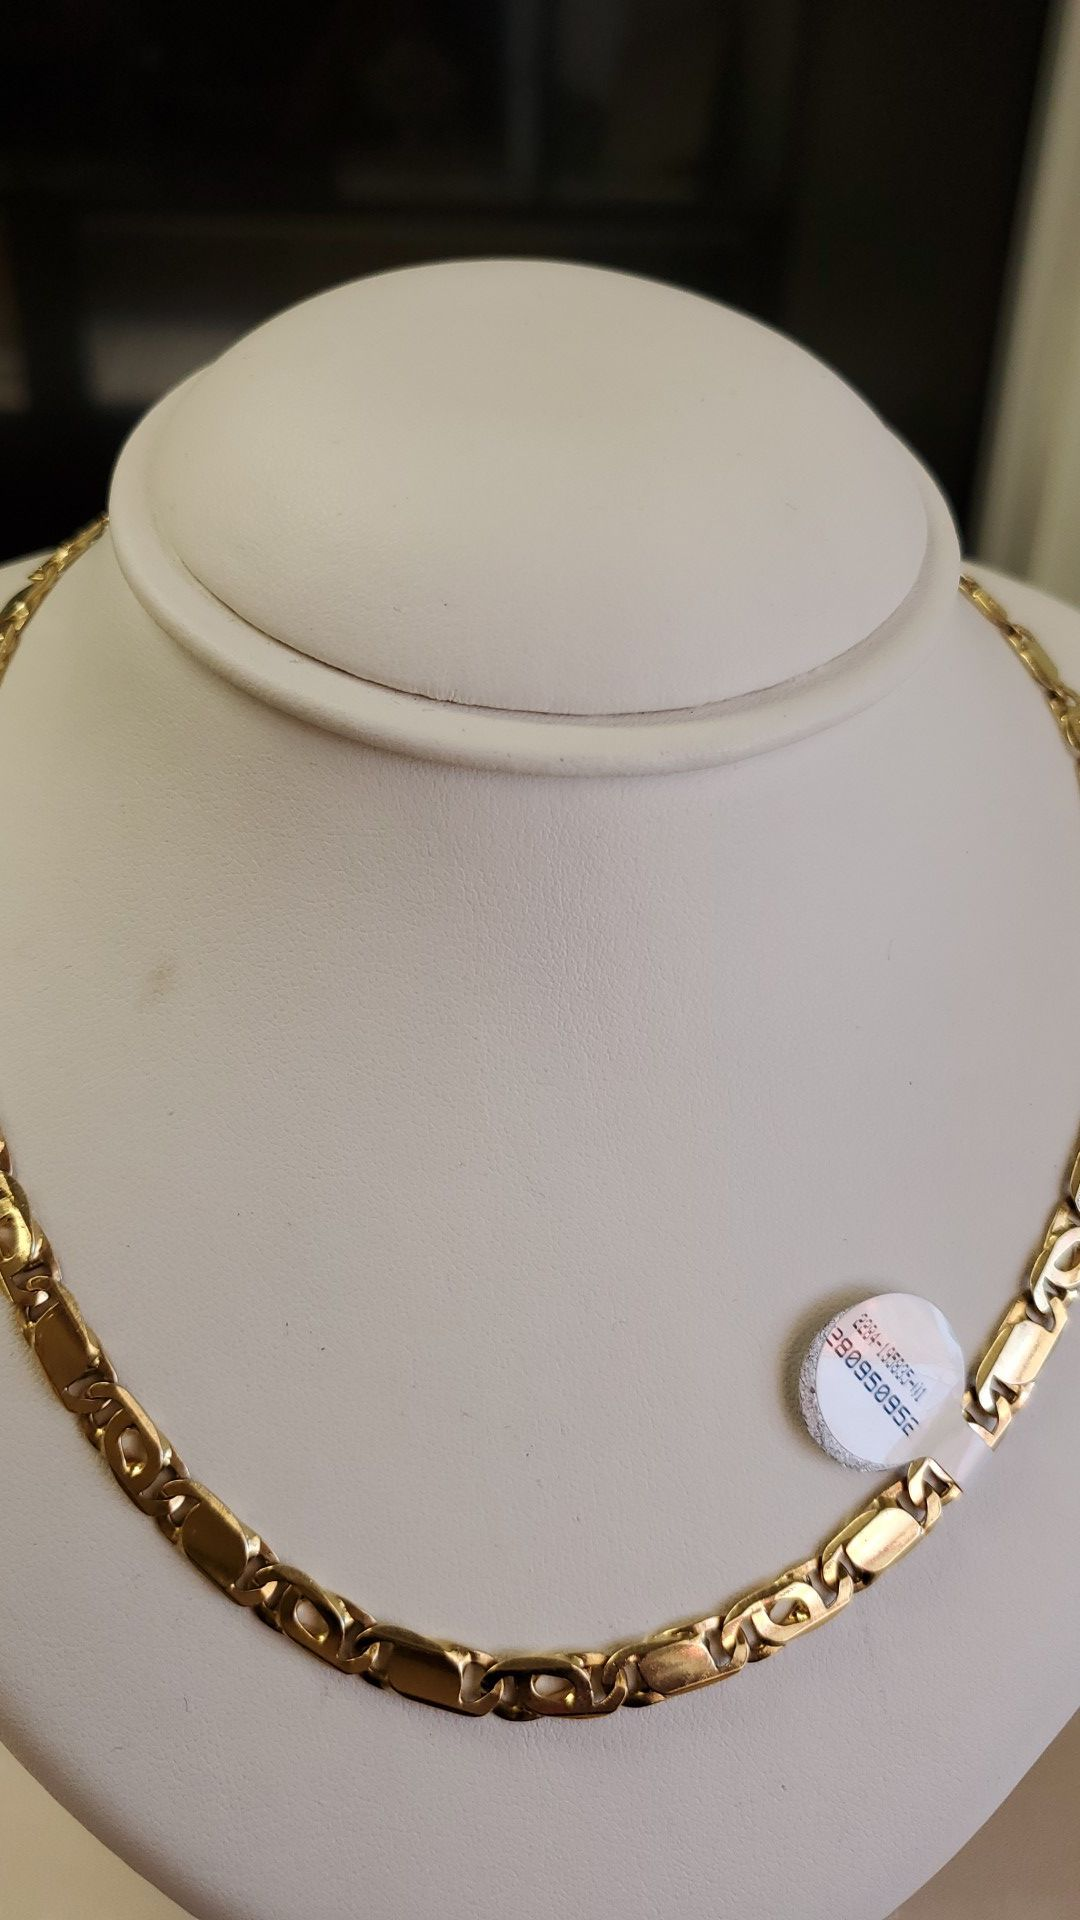 14k gold necklace 39.7 grams 24long if you are interested ask for maribel thank you